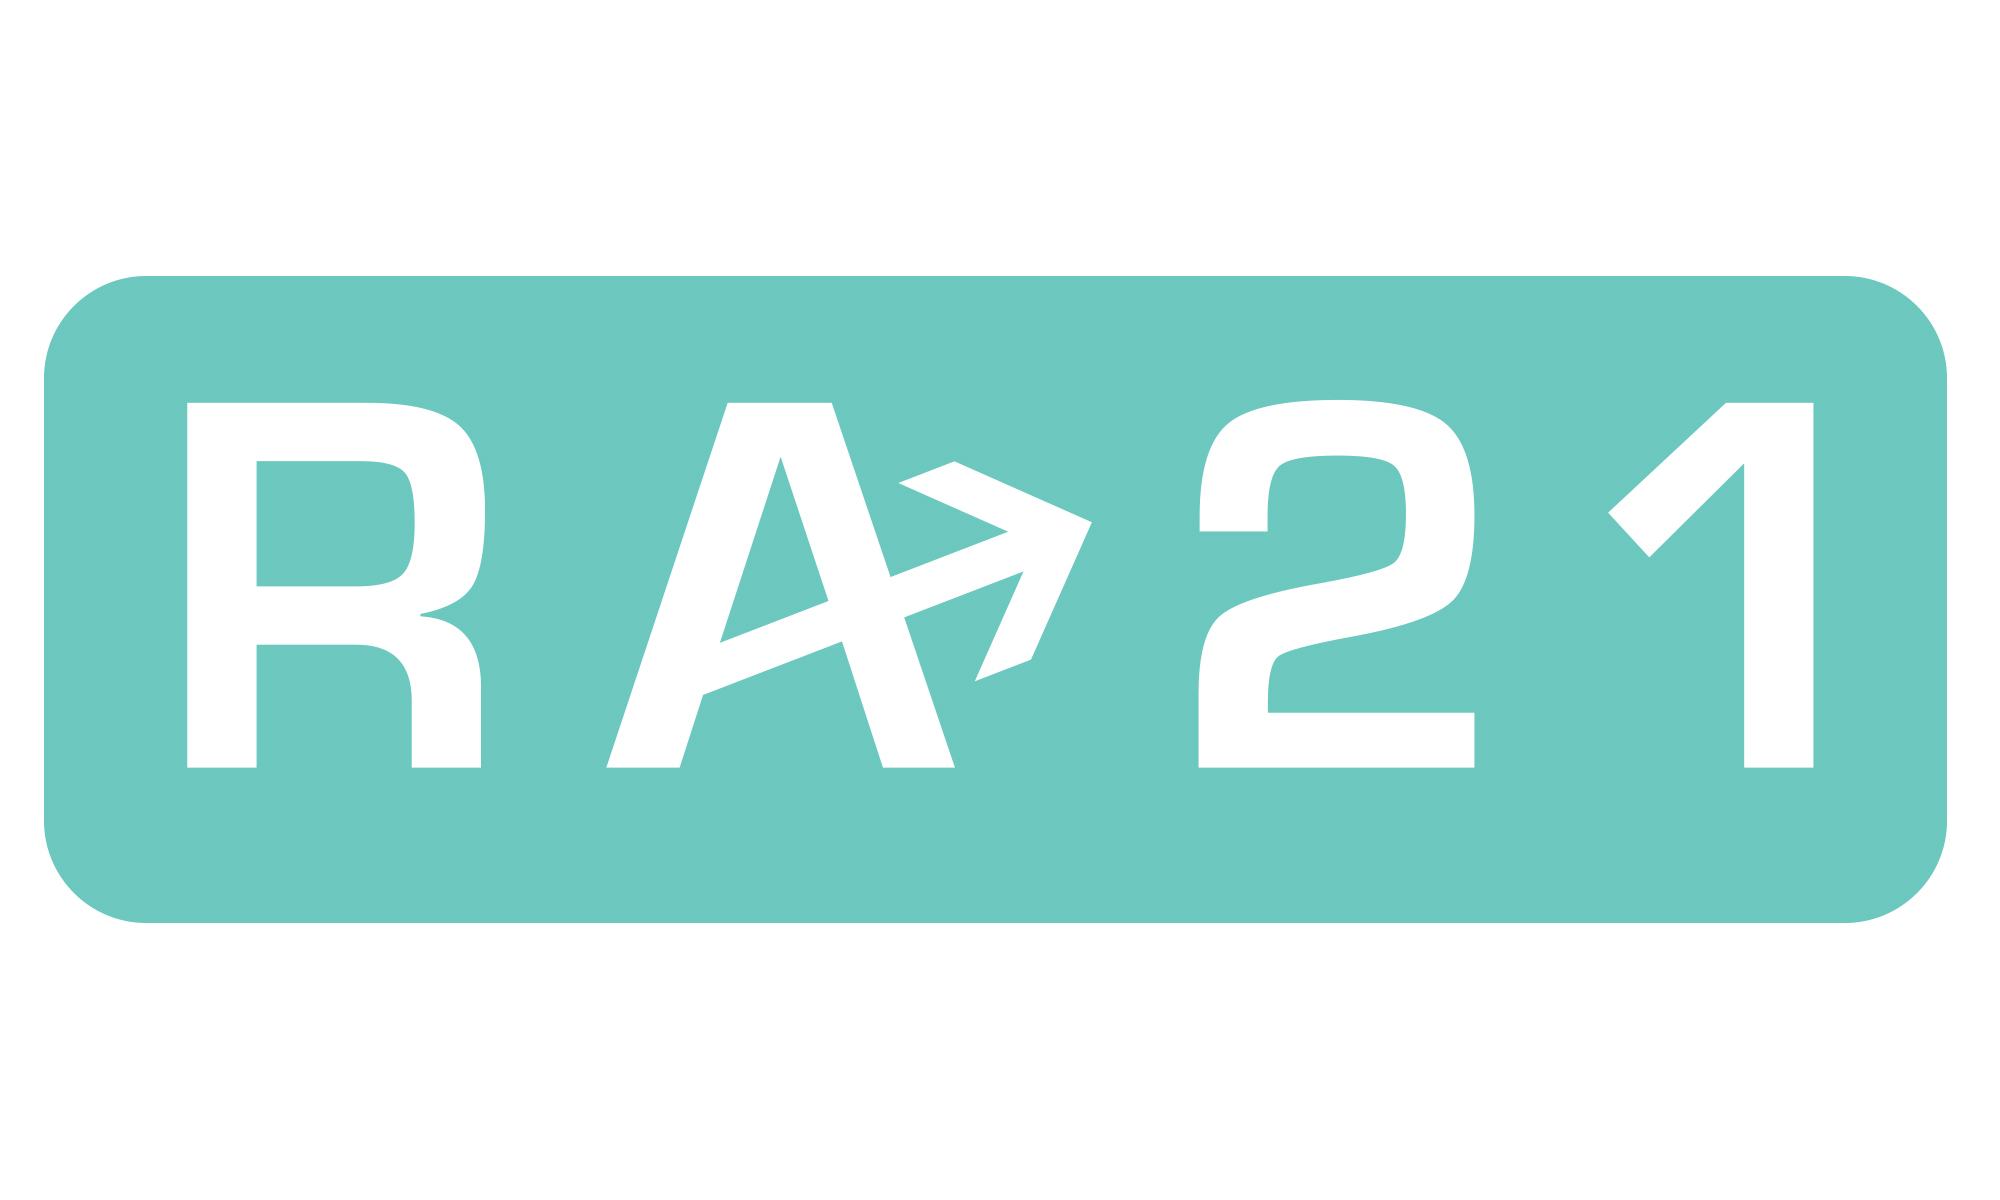 RA21: Resource Access for the 21st Century